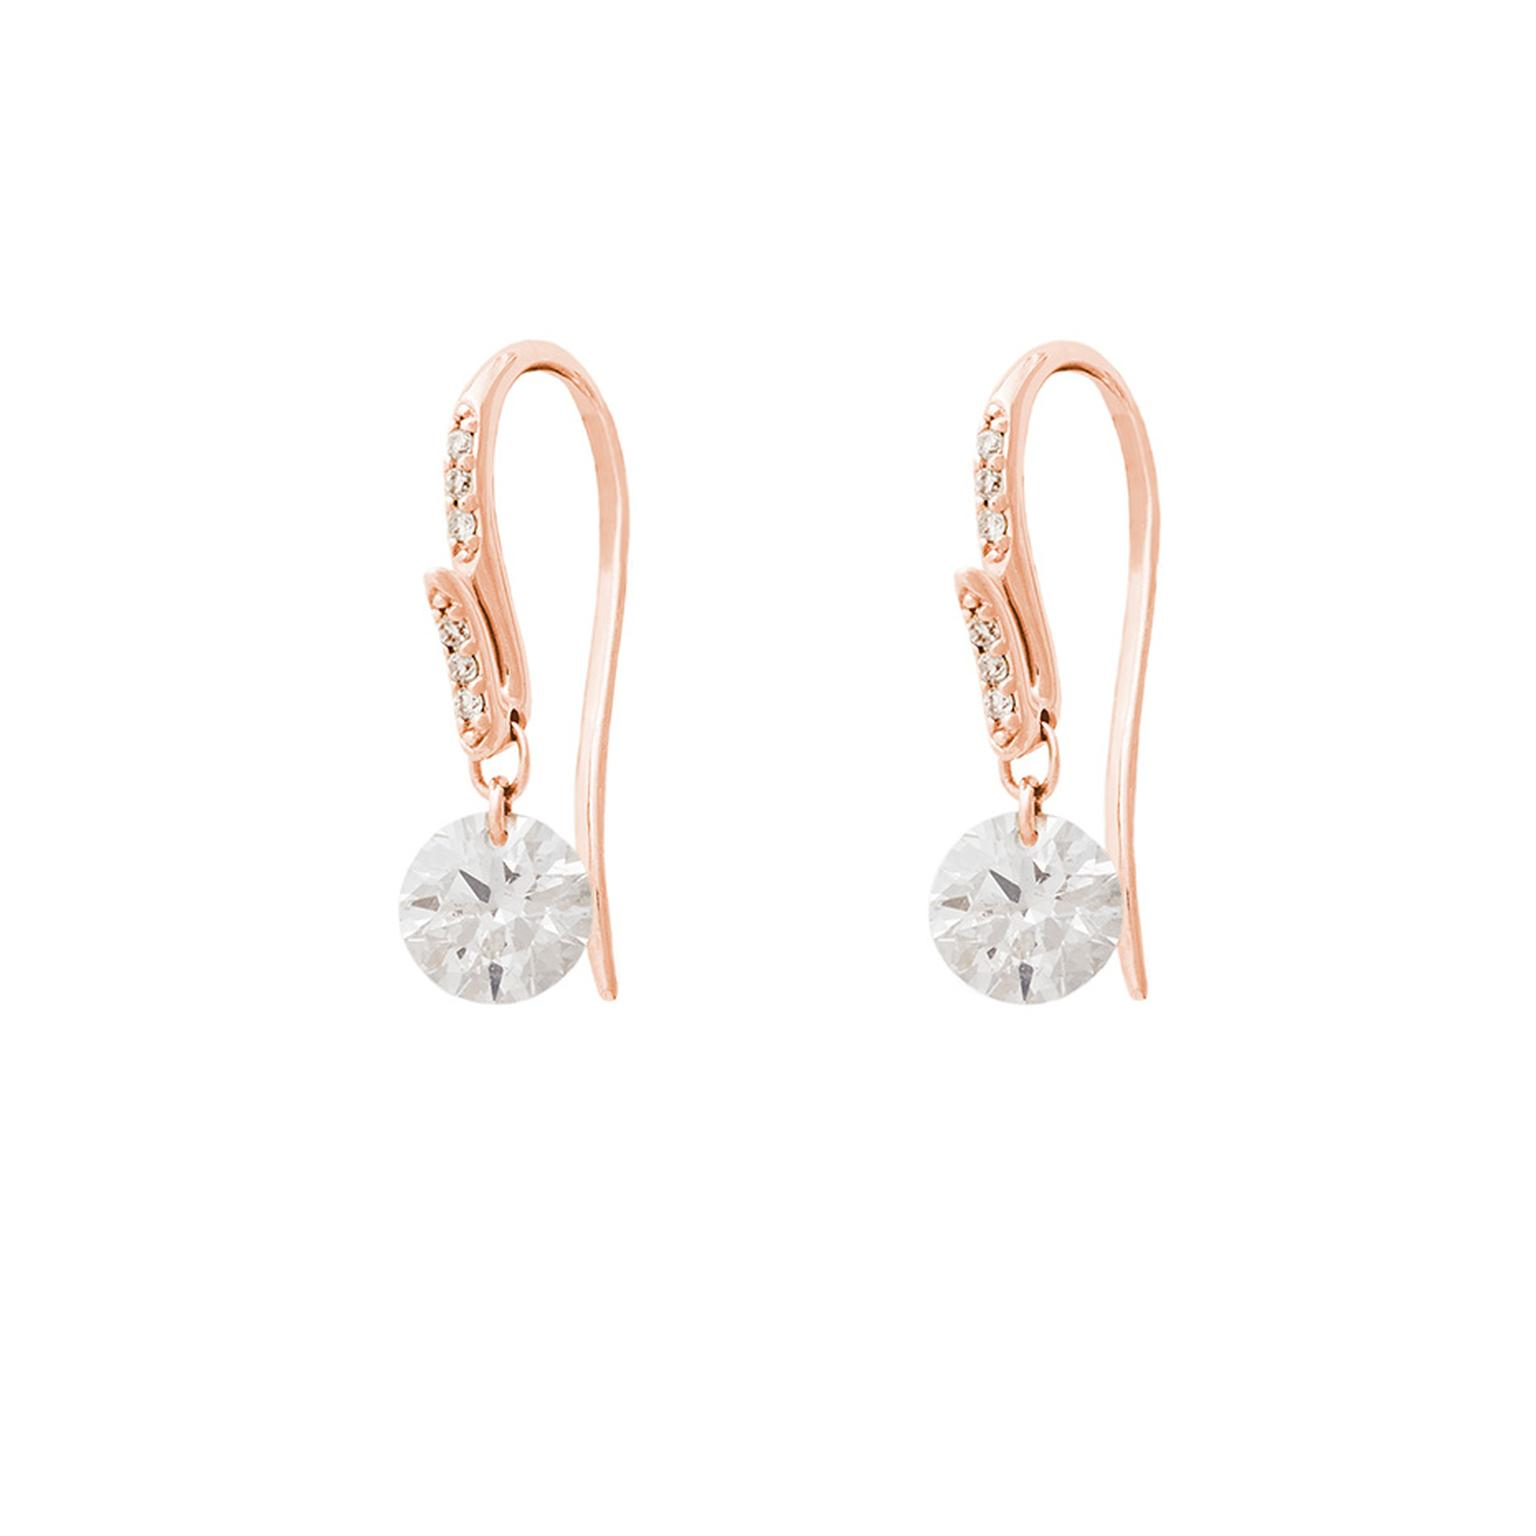 Raphaele Canot Set Free Diamonds collection pink gold and pavé diamond earrings featuring two brilliant-cut diamonds suspended from the centre